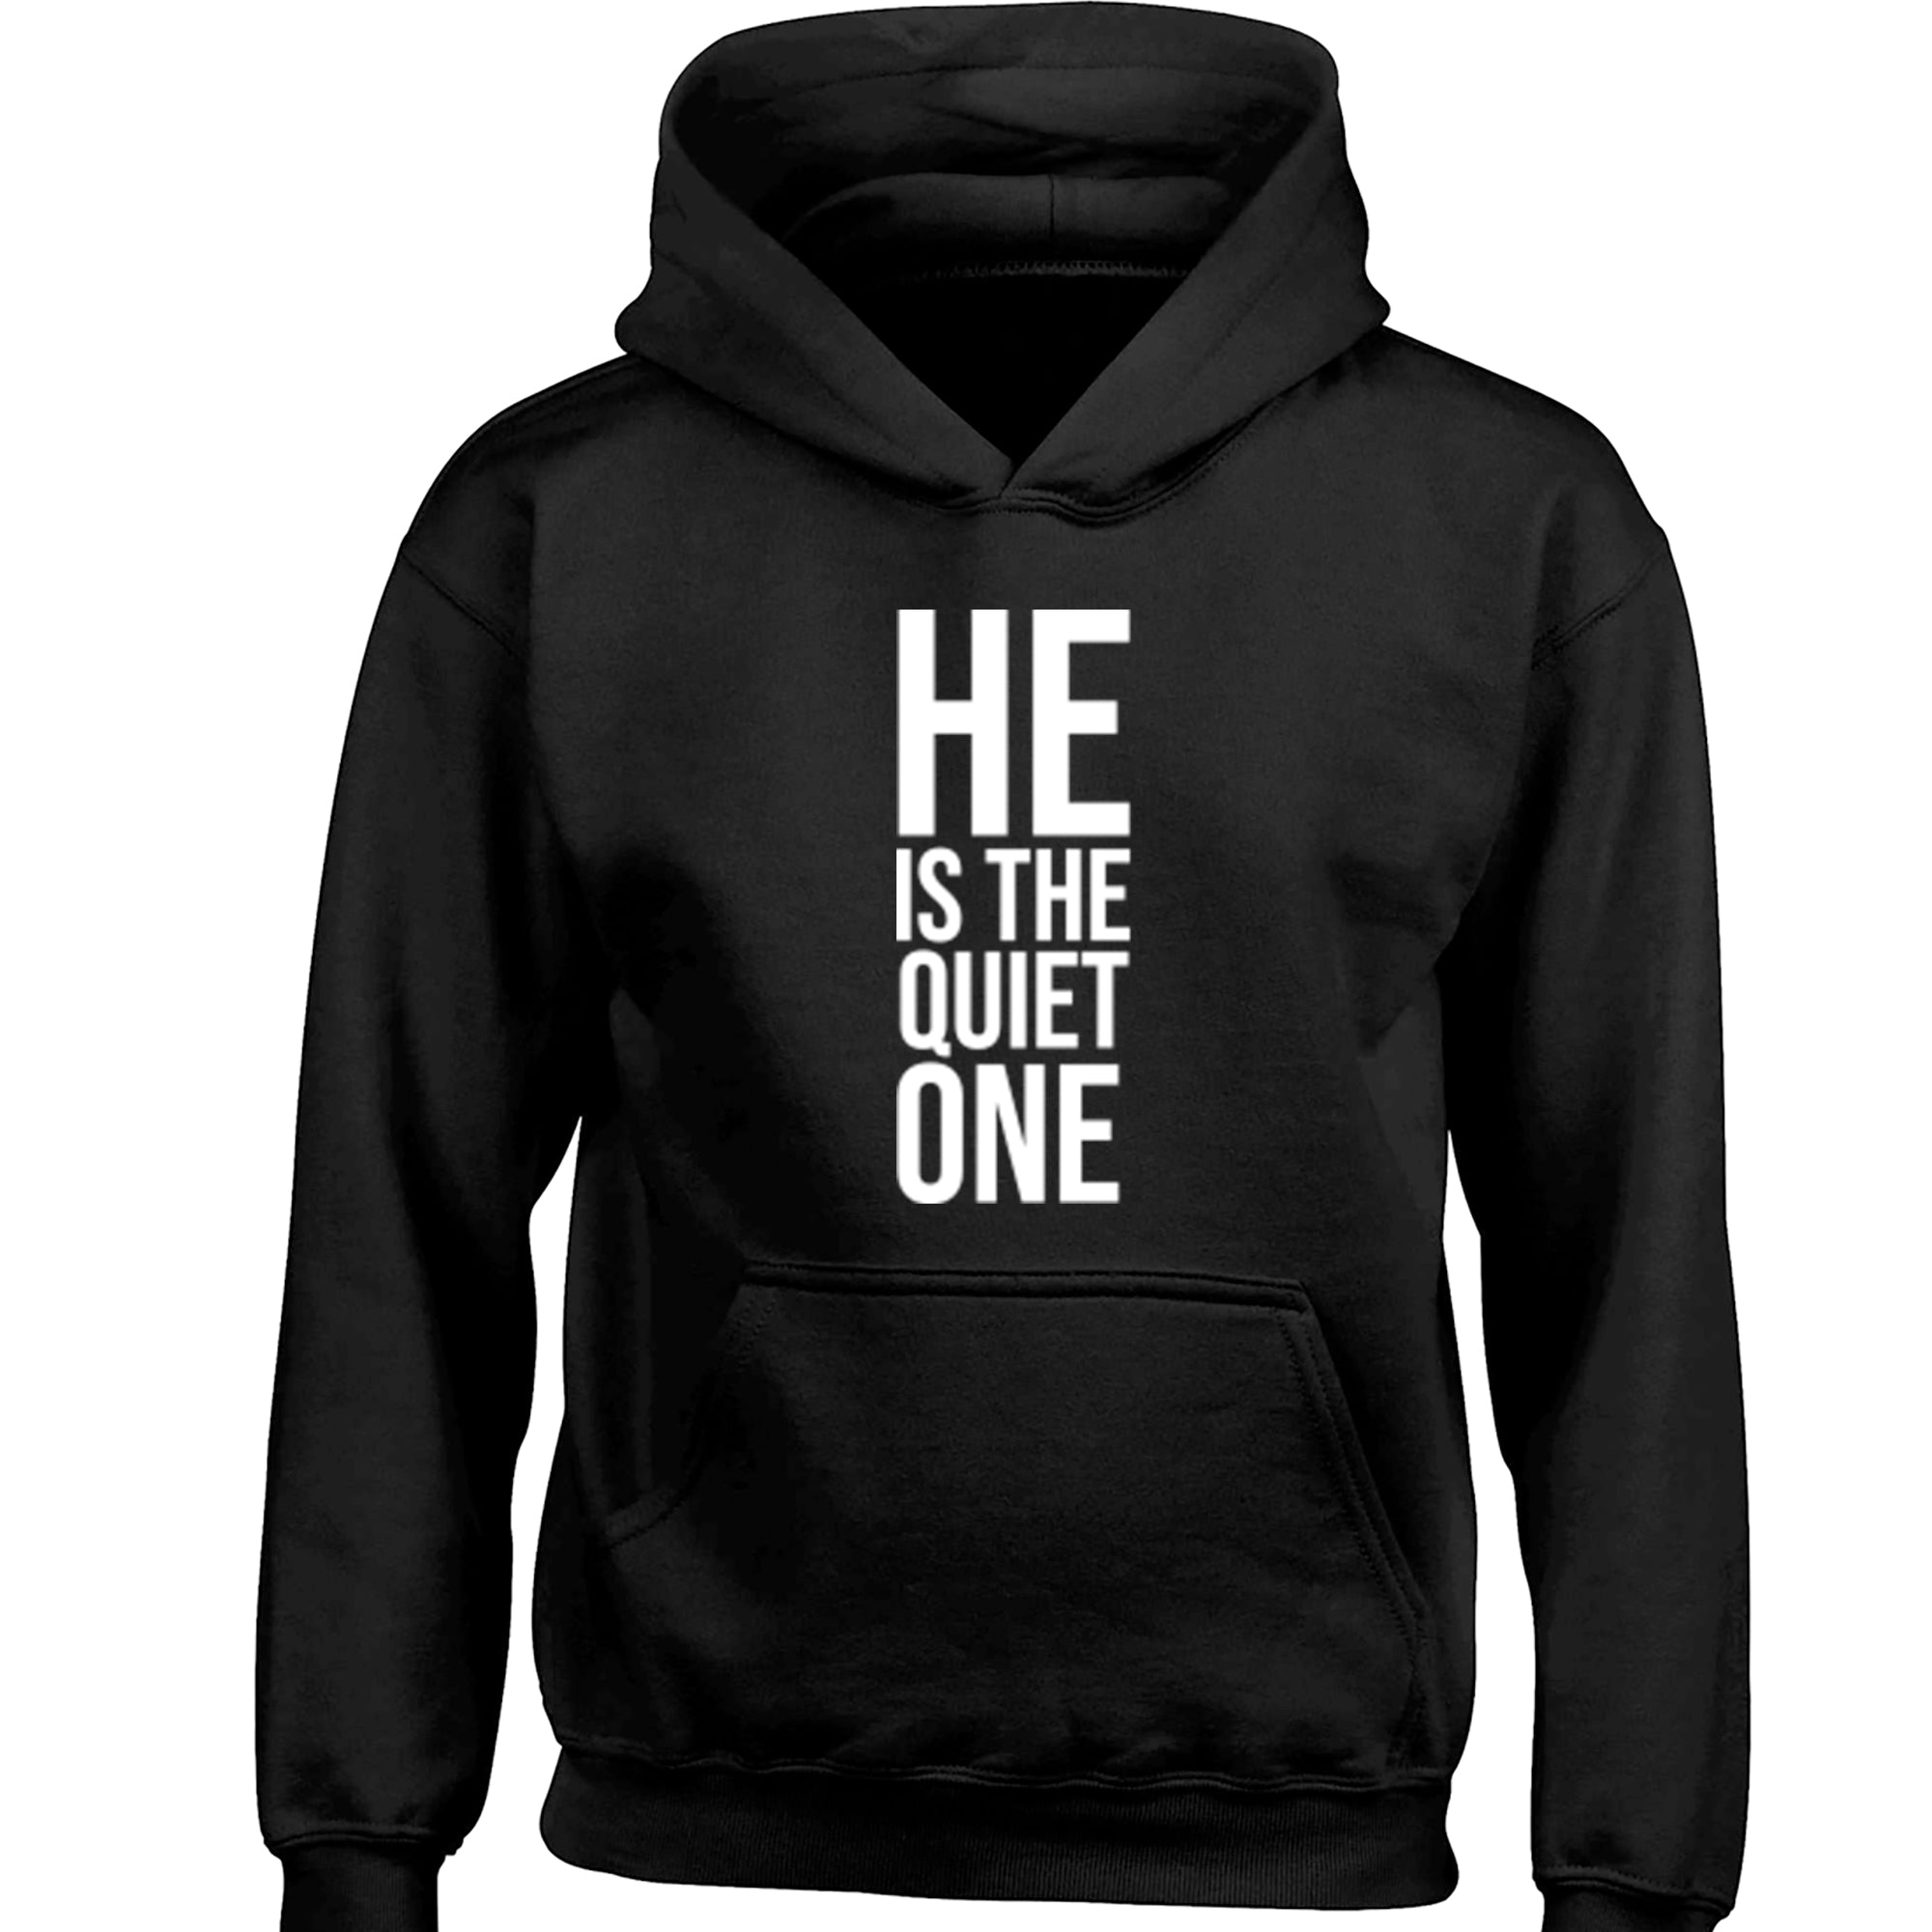 He Is The Quiet One Childrens Ages 3/4-12/14 Unisex Hoodie S0336 - Illustrated Identity Ltd.